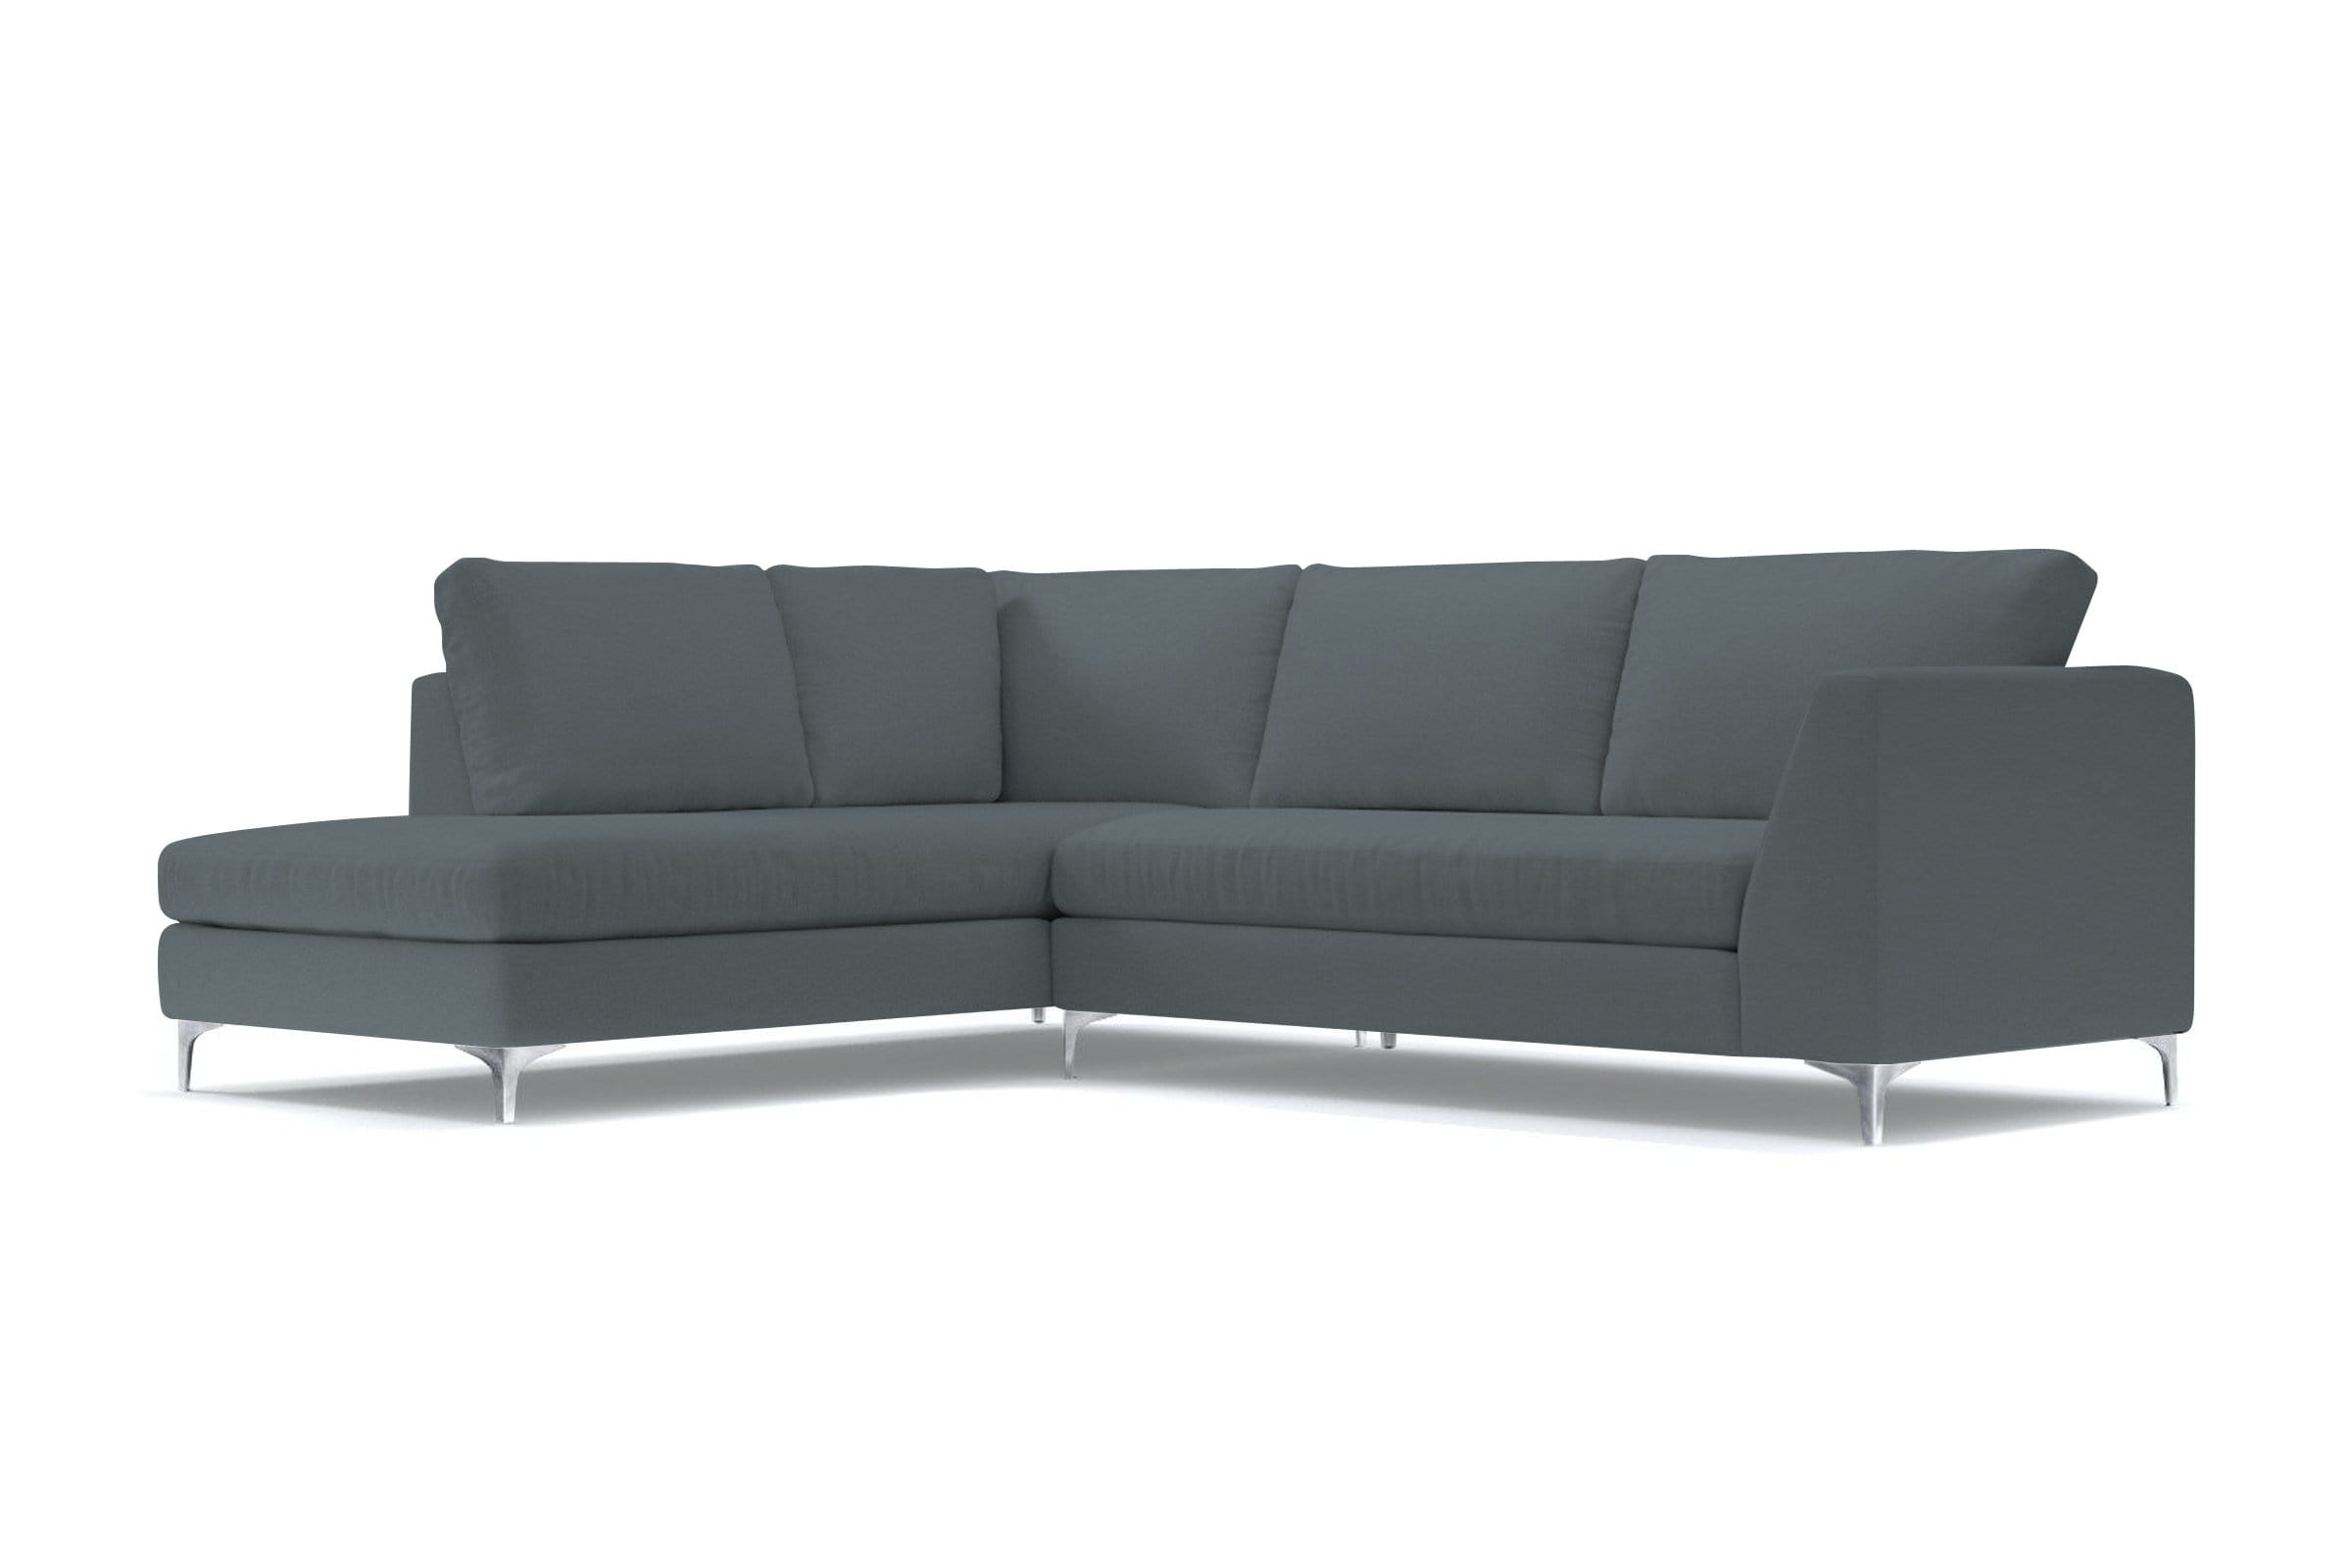 Mulholland 2pc Sectional Sofa - Blue - Modern Sectional Sofa Made in USA - Sold by Apt2B